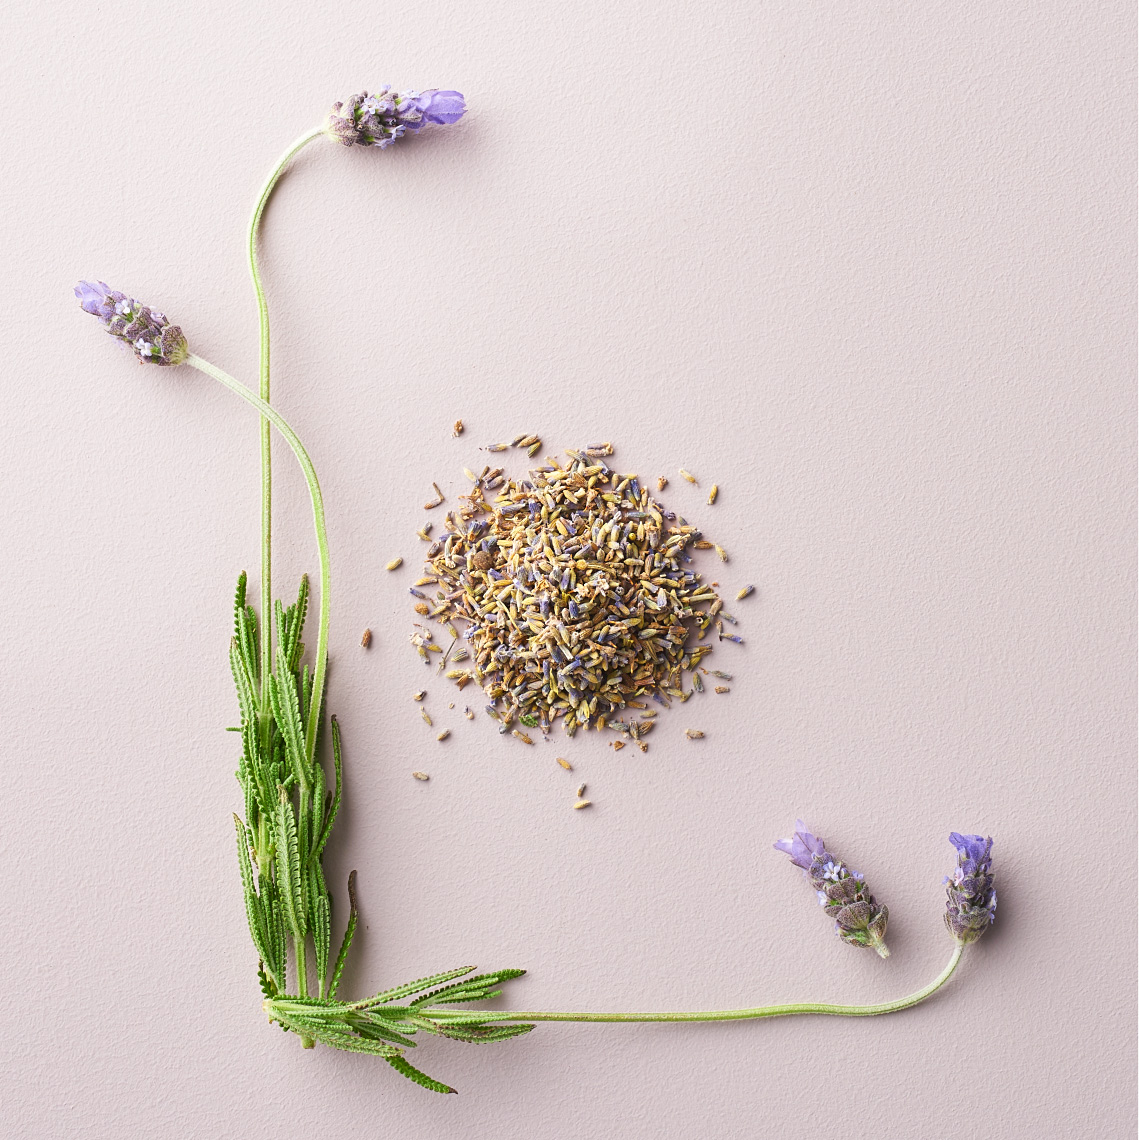 overhead image of lavender plant and seeds on light pink background